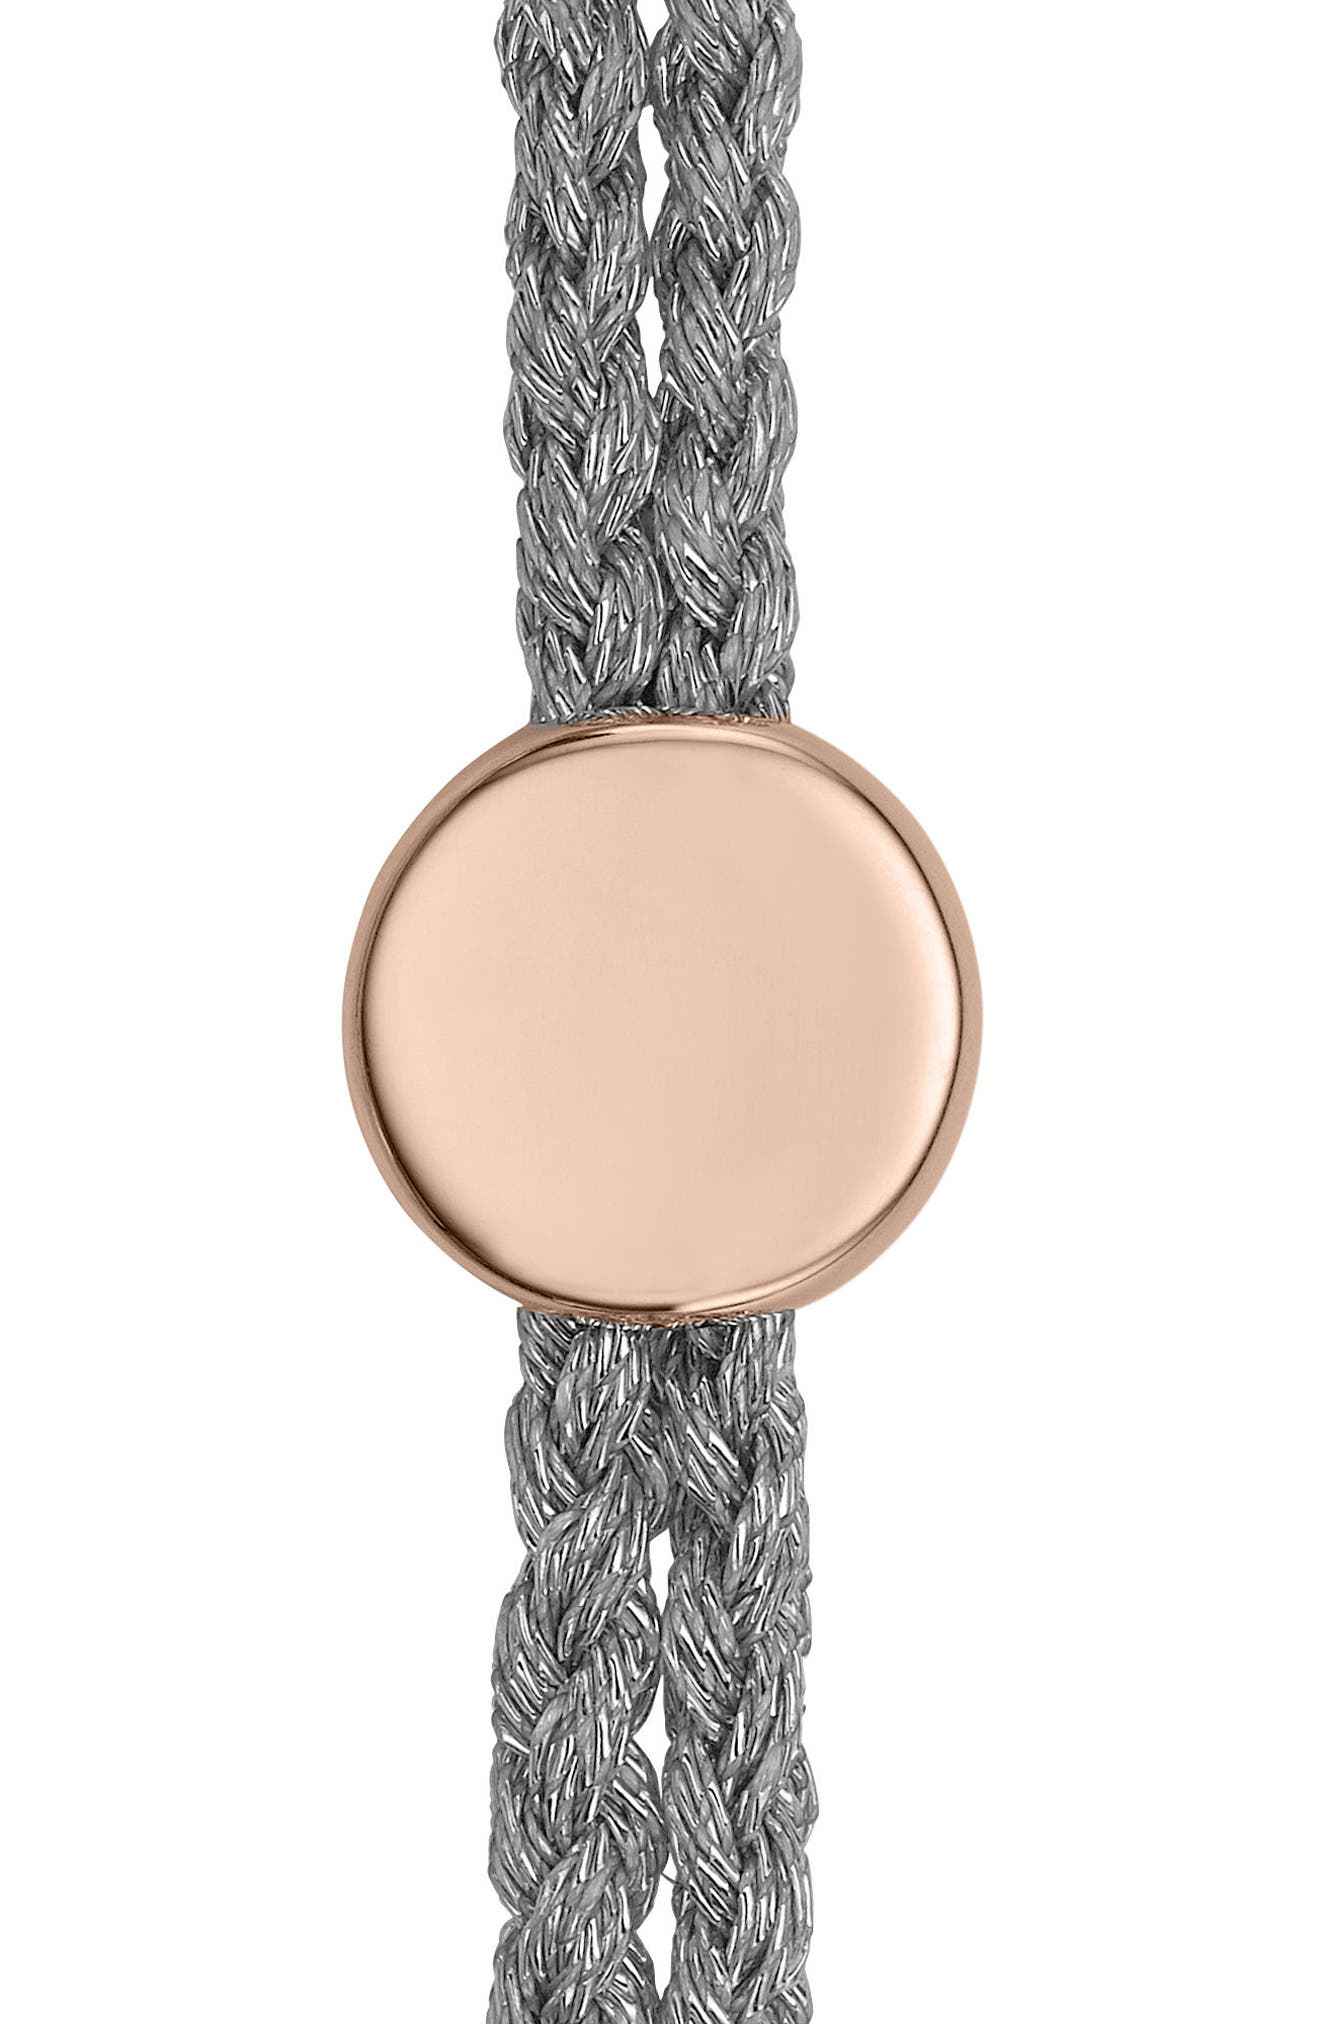 Engravable Linear Bead Friendship Bracelet,                             Alternate thumbnail 2, color,                             ROSE GOLD/ SILVER METALLIC